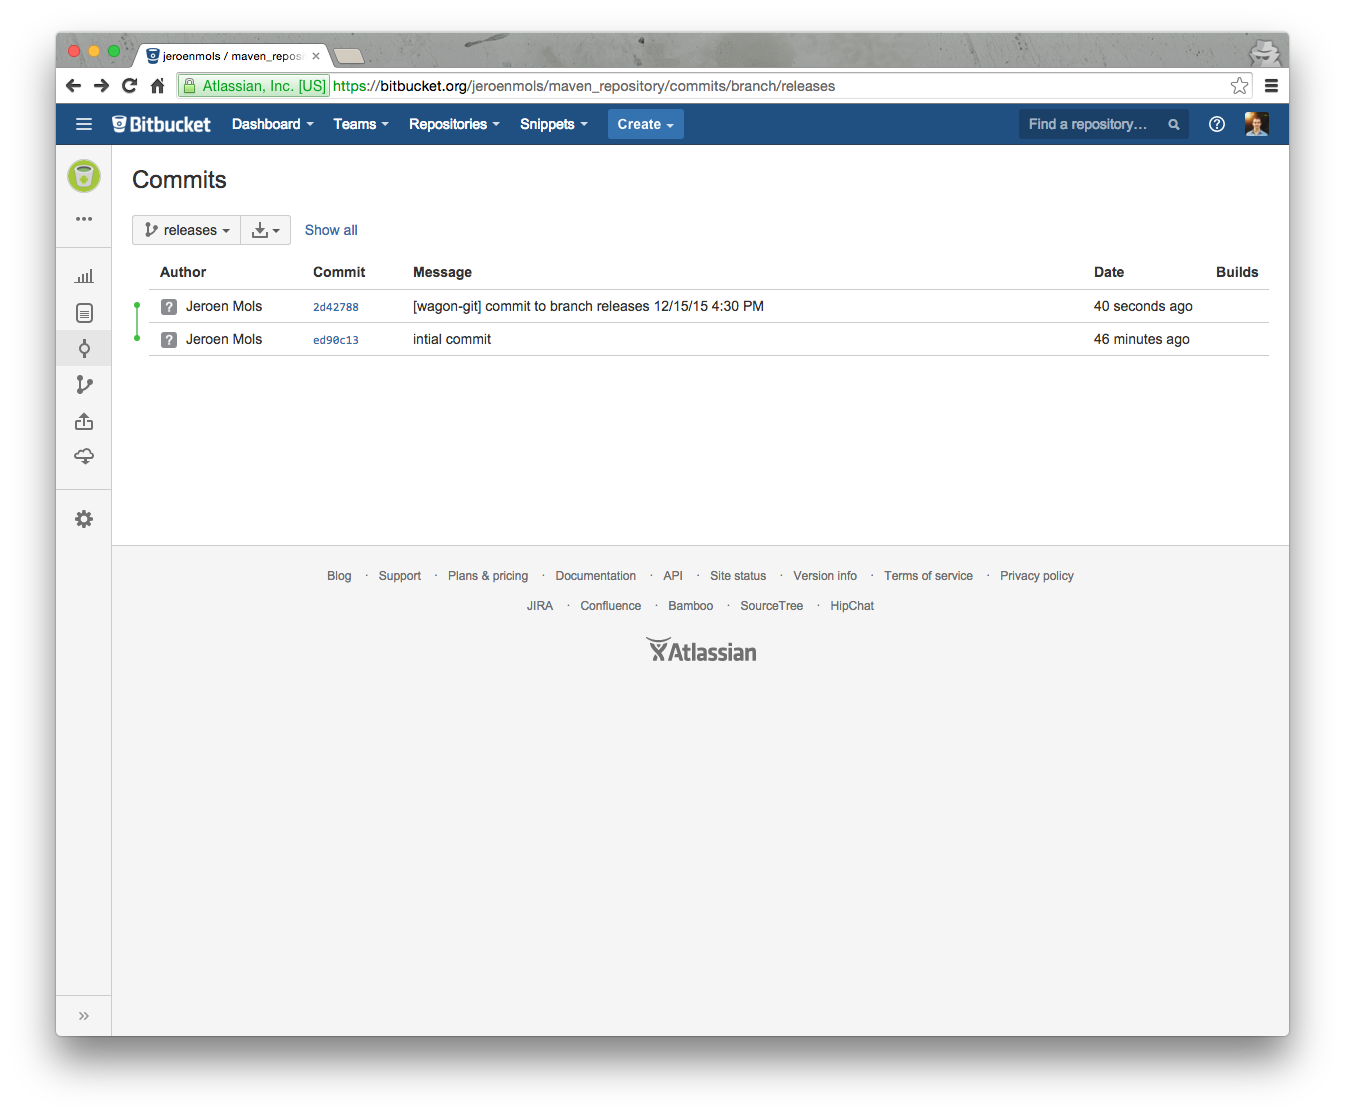 Release commit of a Maven upload to BitBucket.